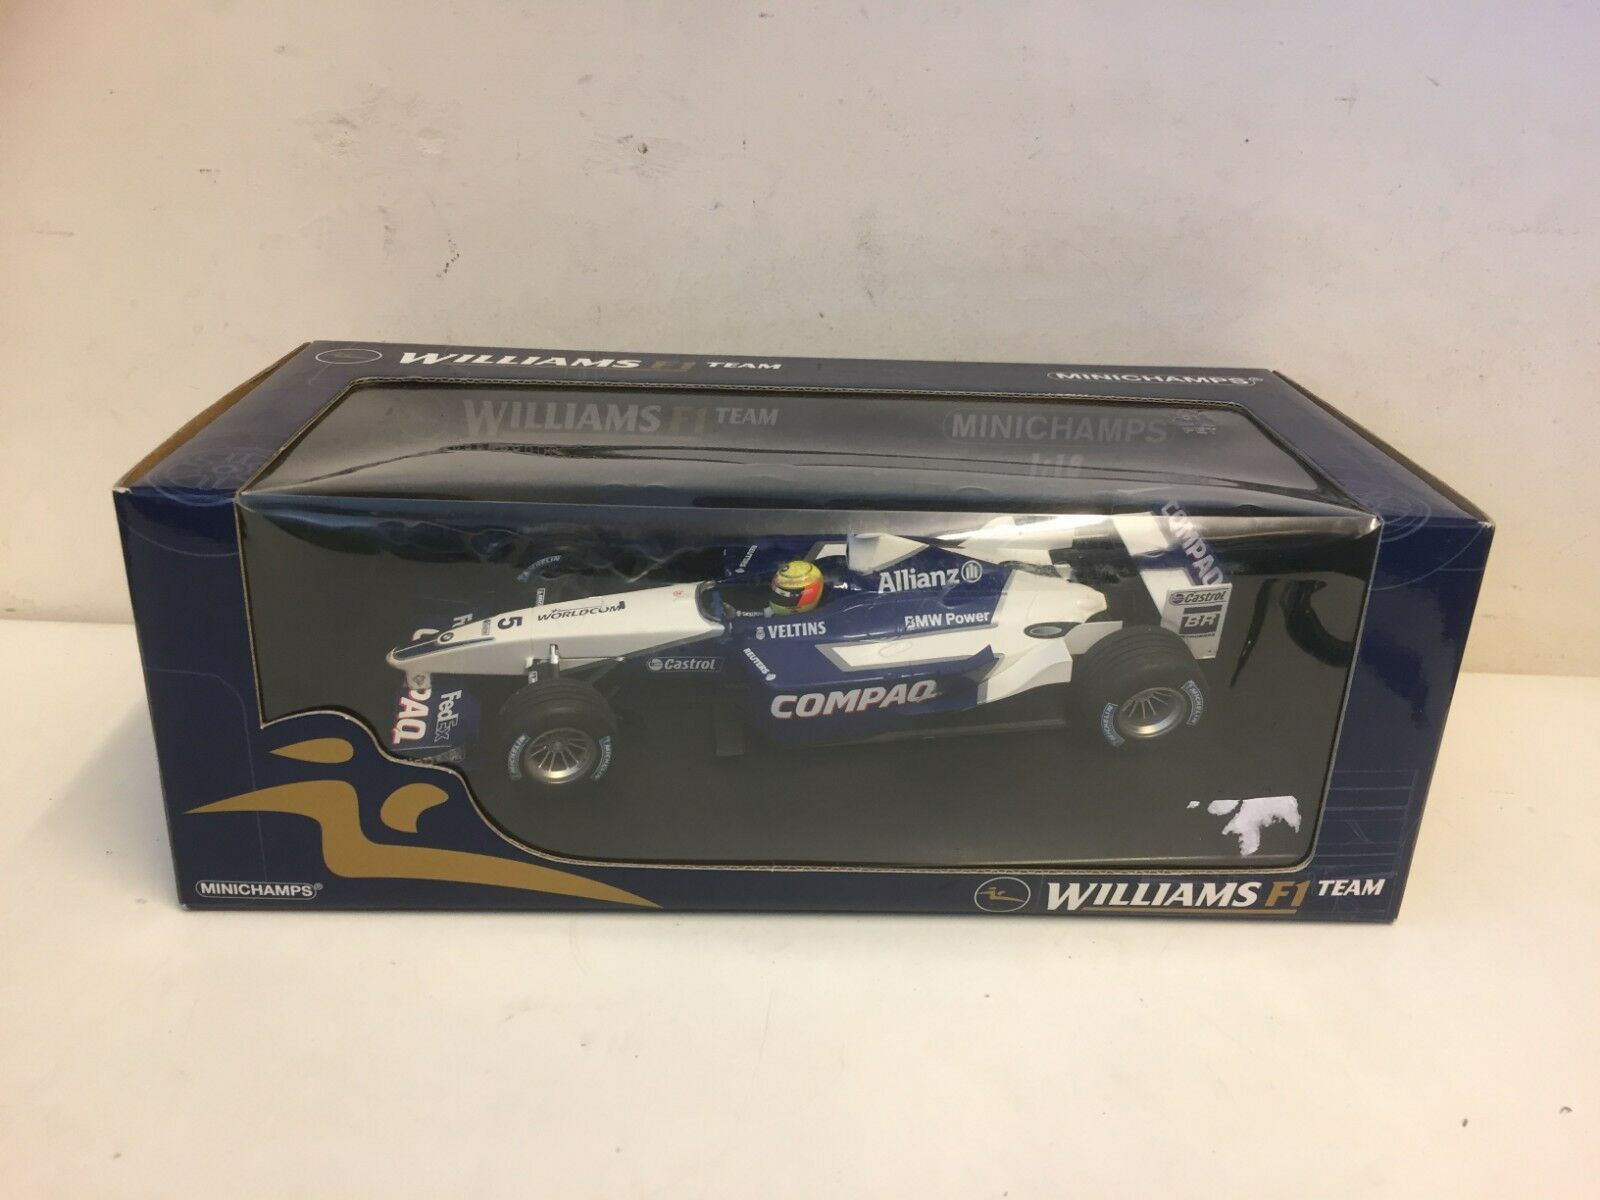 MINICHAMPS F1-Williams BMW Launch voiture-R. Schumacher-échelle 1 18 -100 020095   design unique